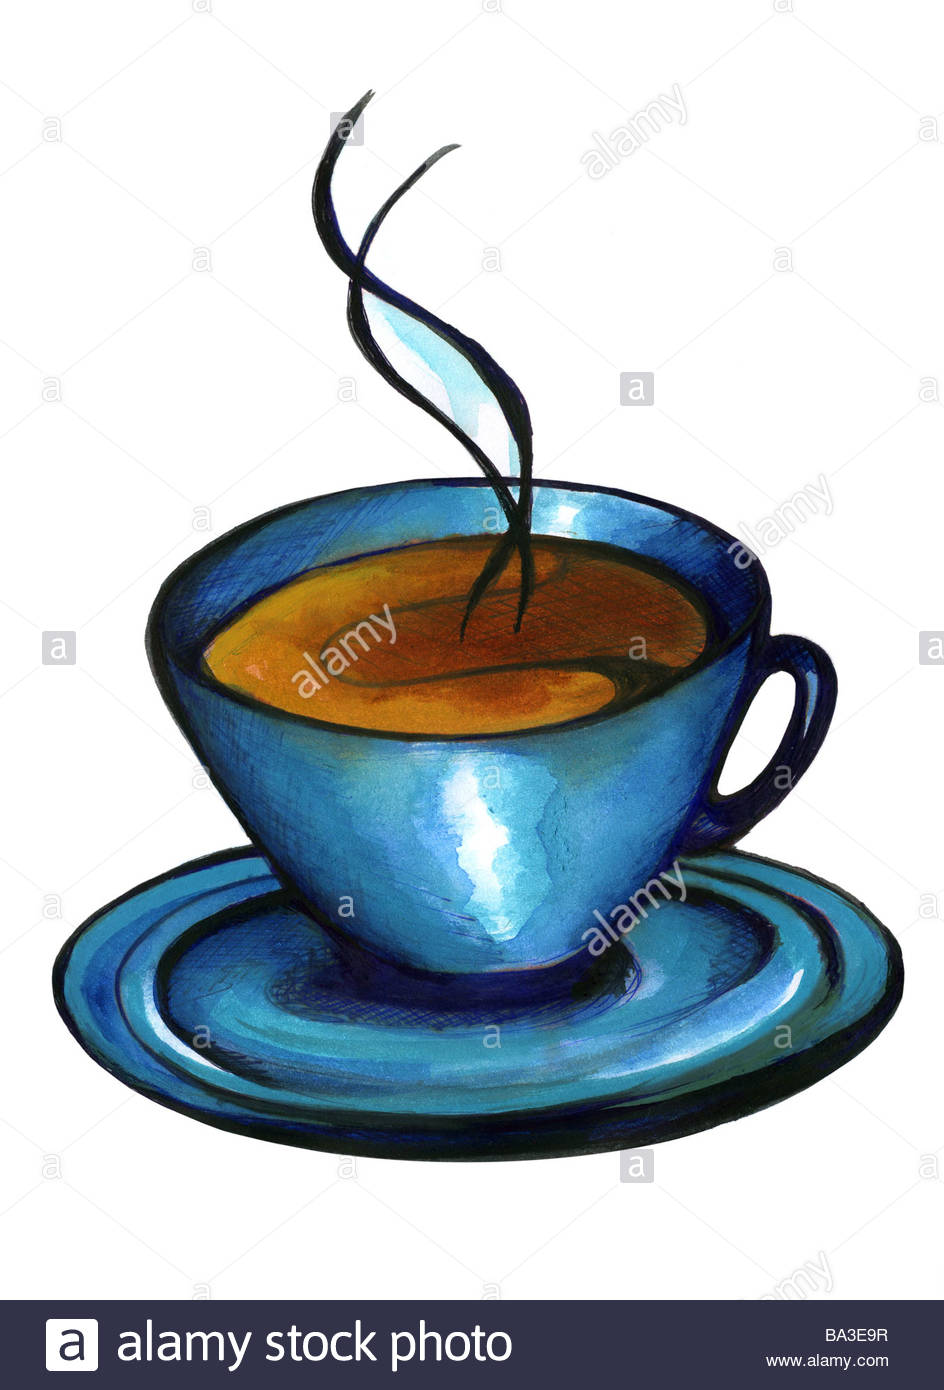 944x1390 Illustration Cup Coffee Steams Graphics Drawing Watercolor